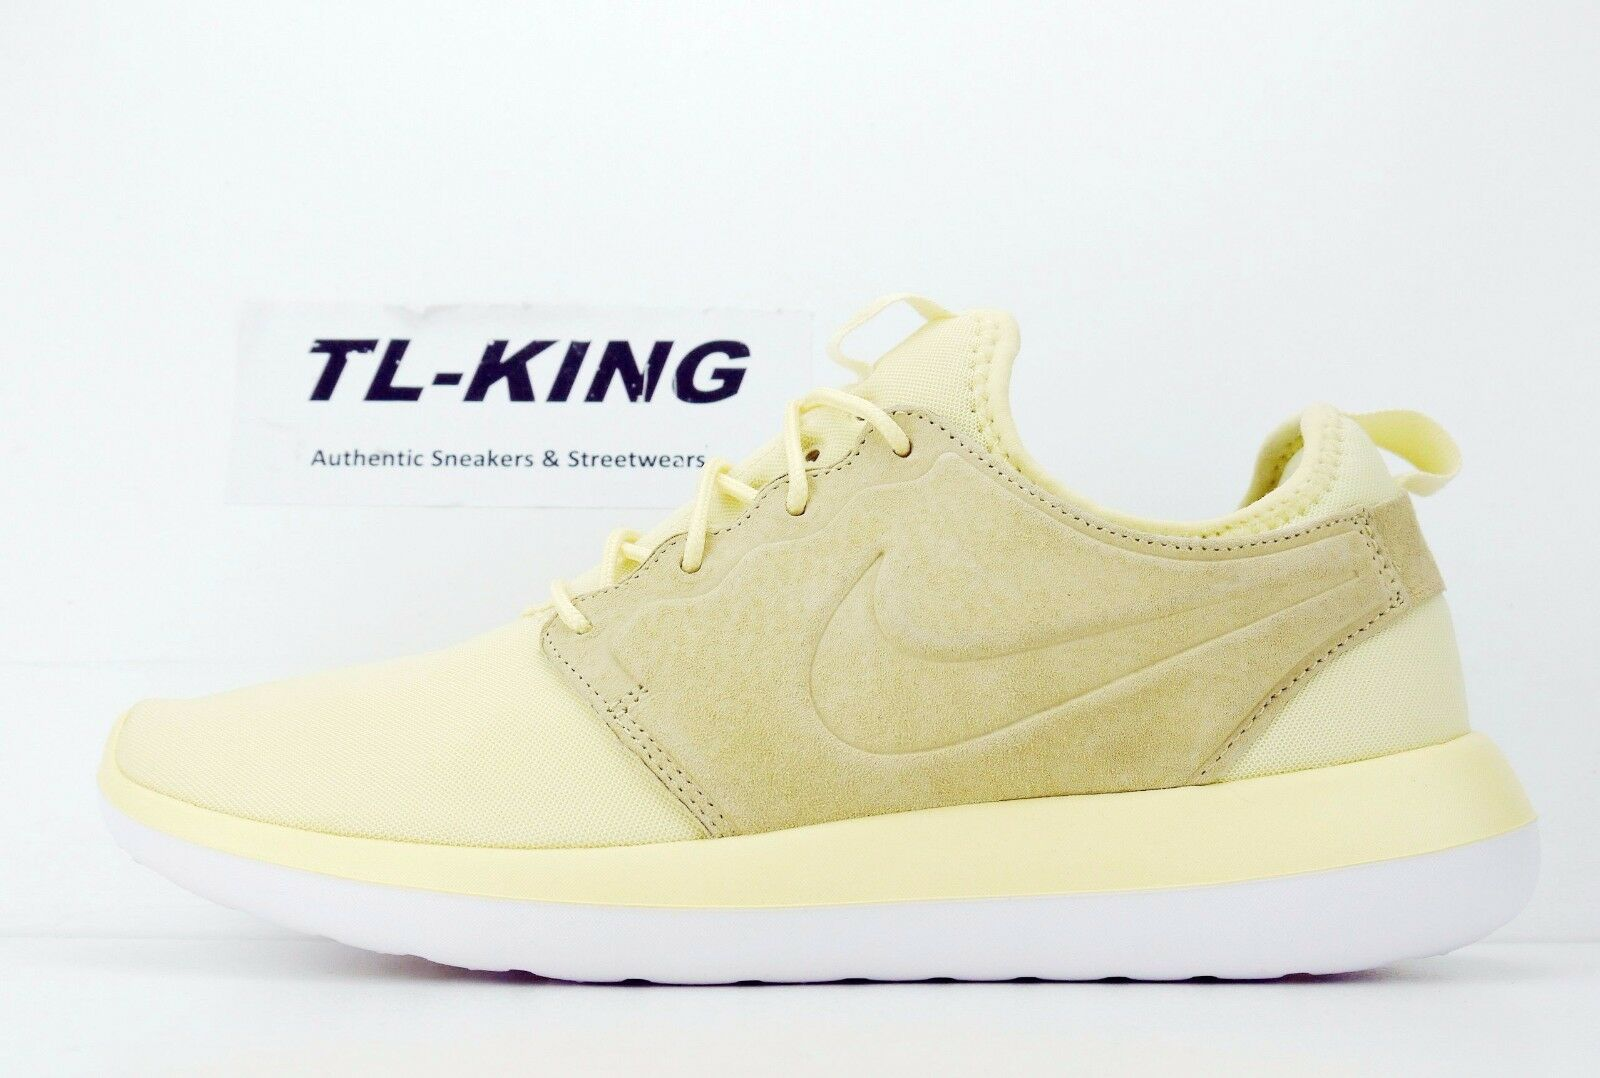 Nike Roshe Two BR Breath Lemon Chiffon Yellow Sneaker 898037-700 Msrp Price reduction